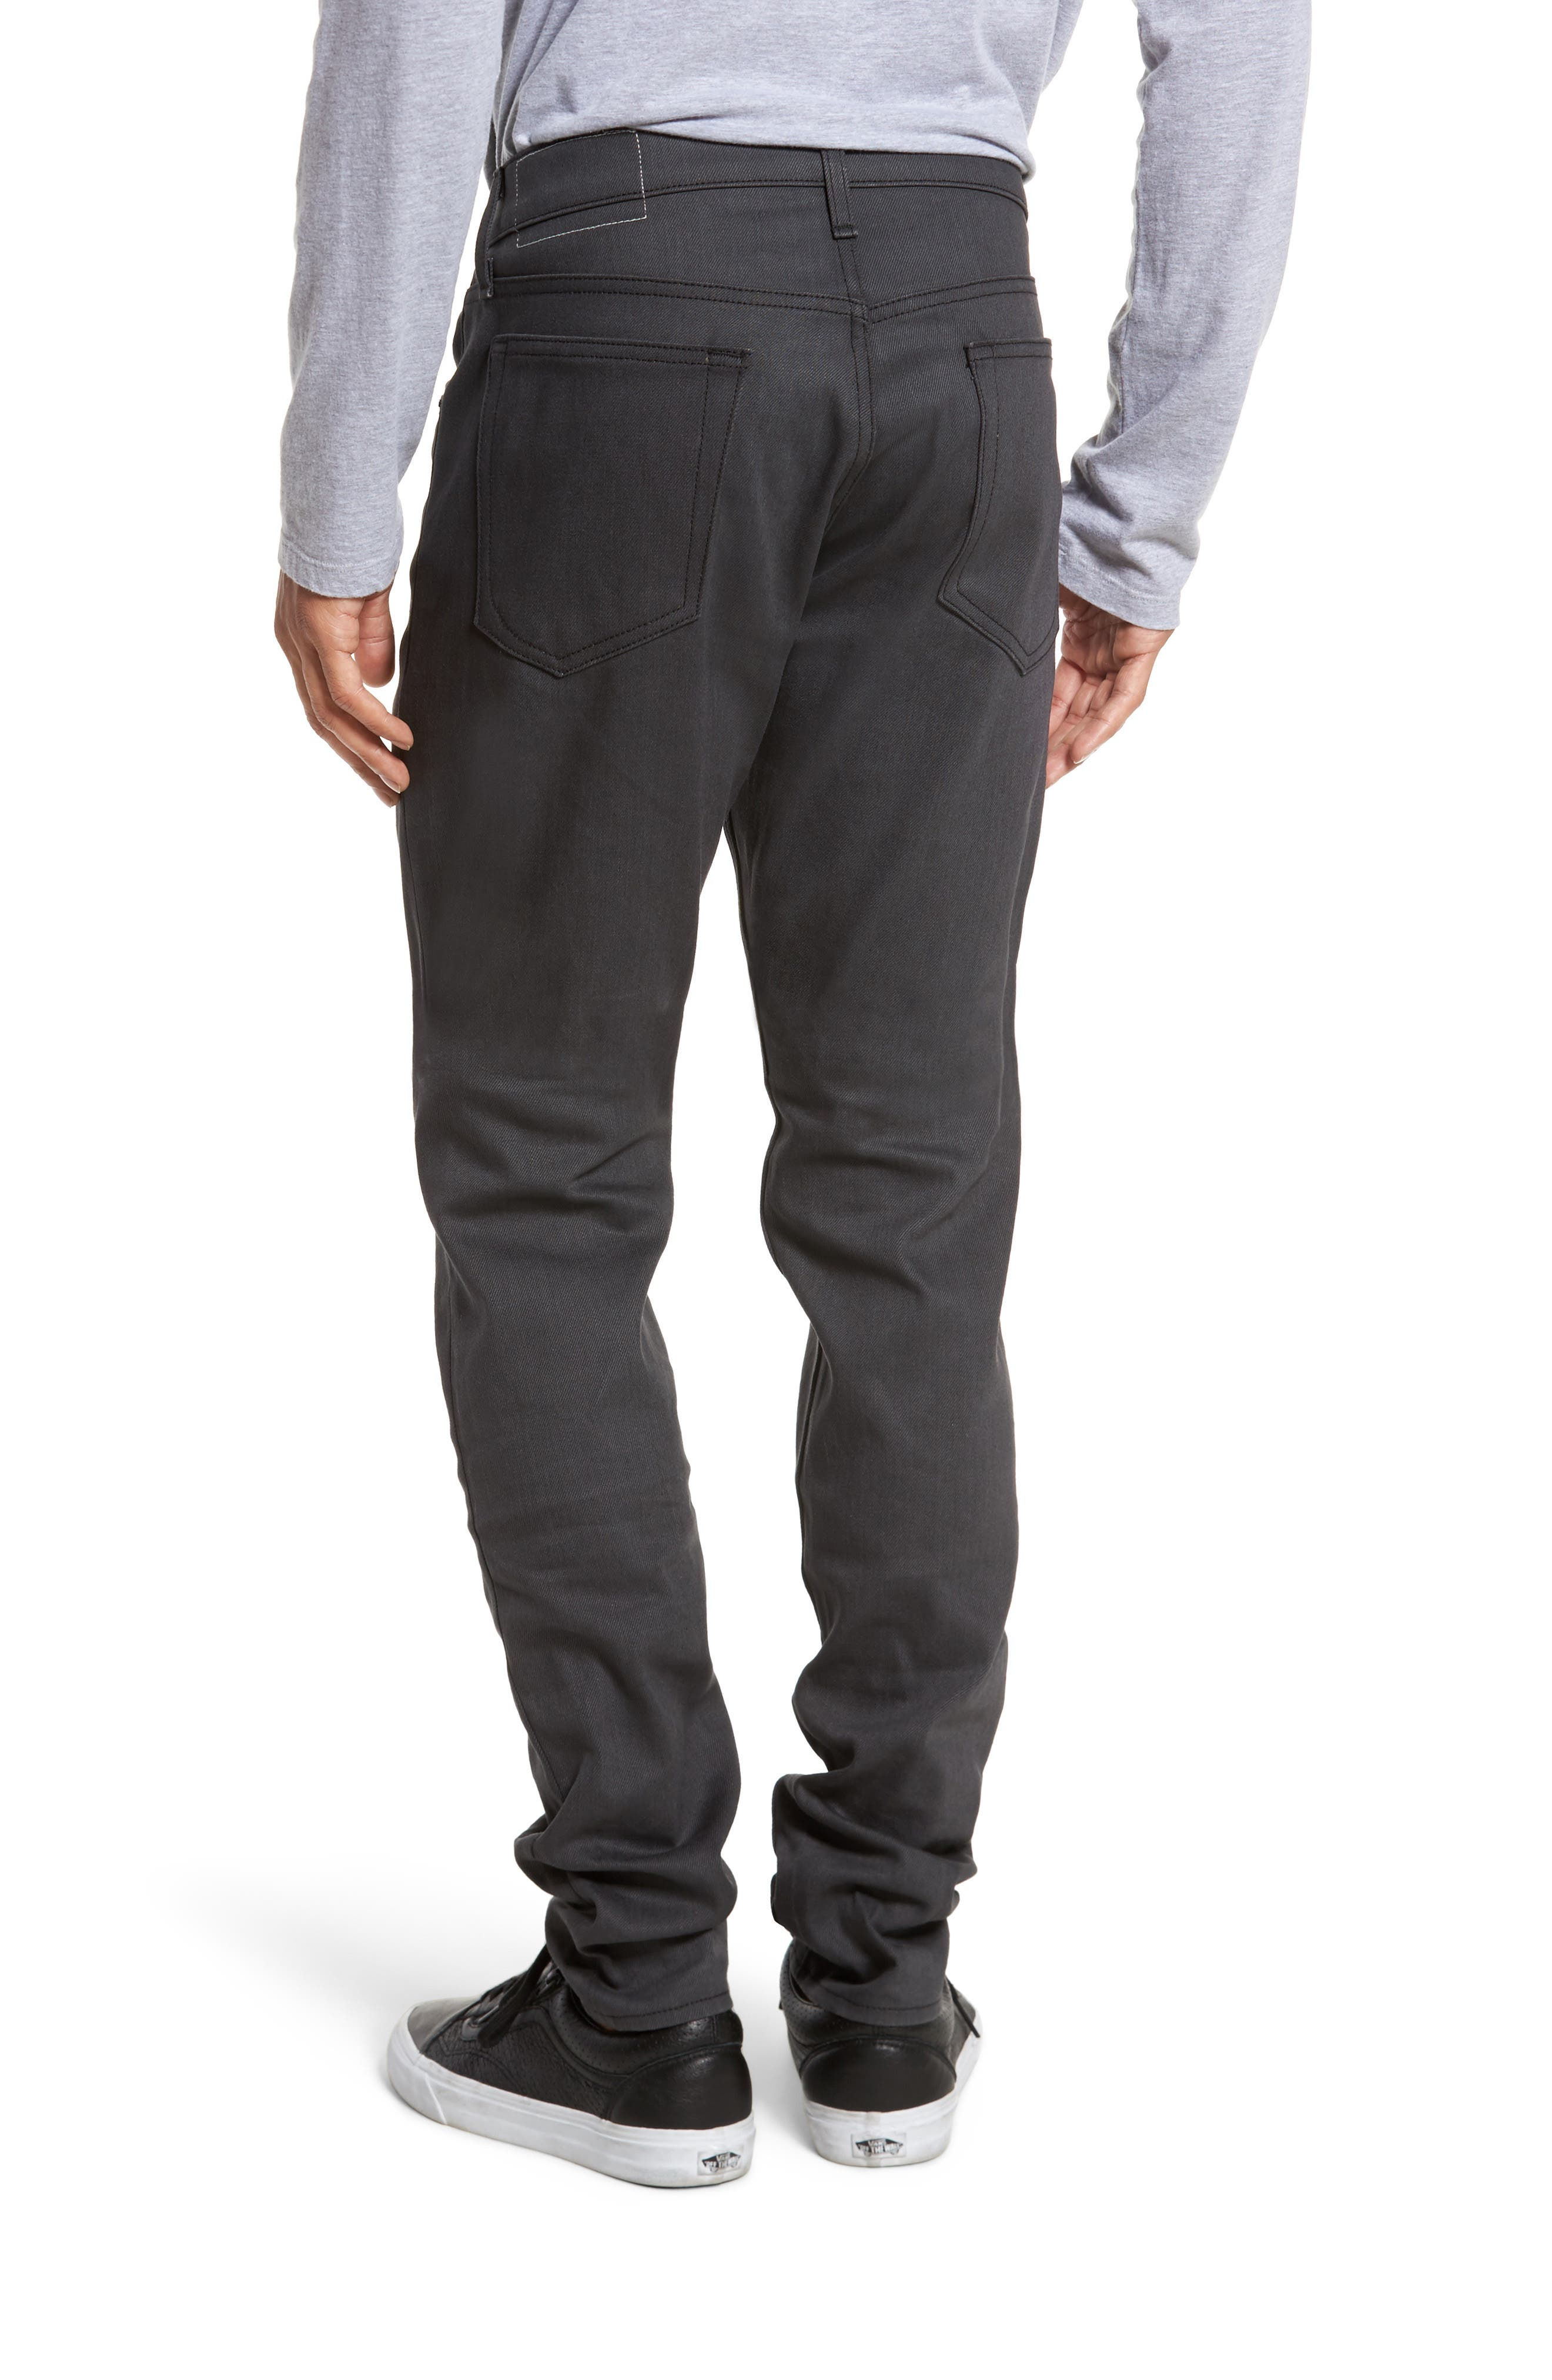 Fit 1 Skinny Fit Jeans,                             Alternate thumbnail 2, color,                             002